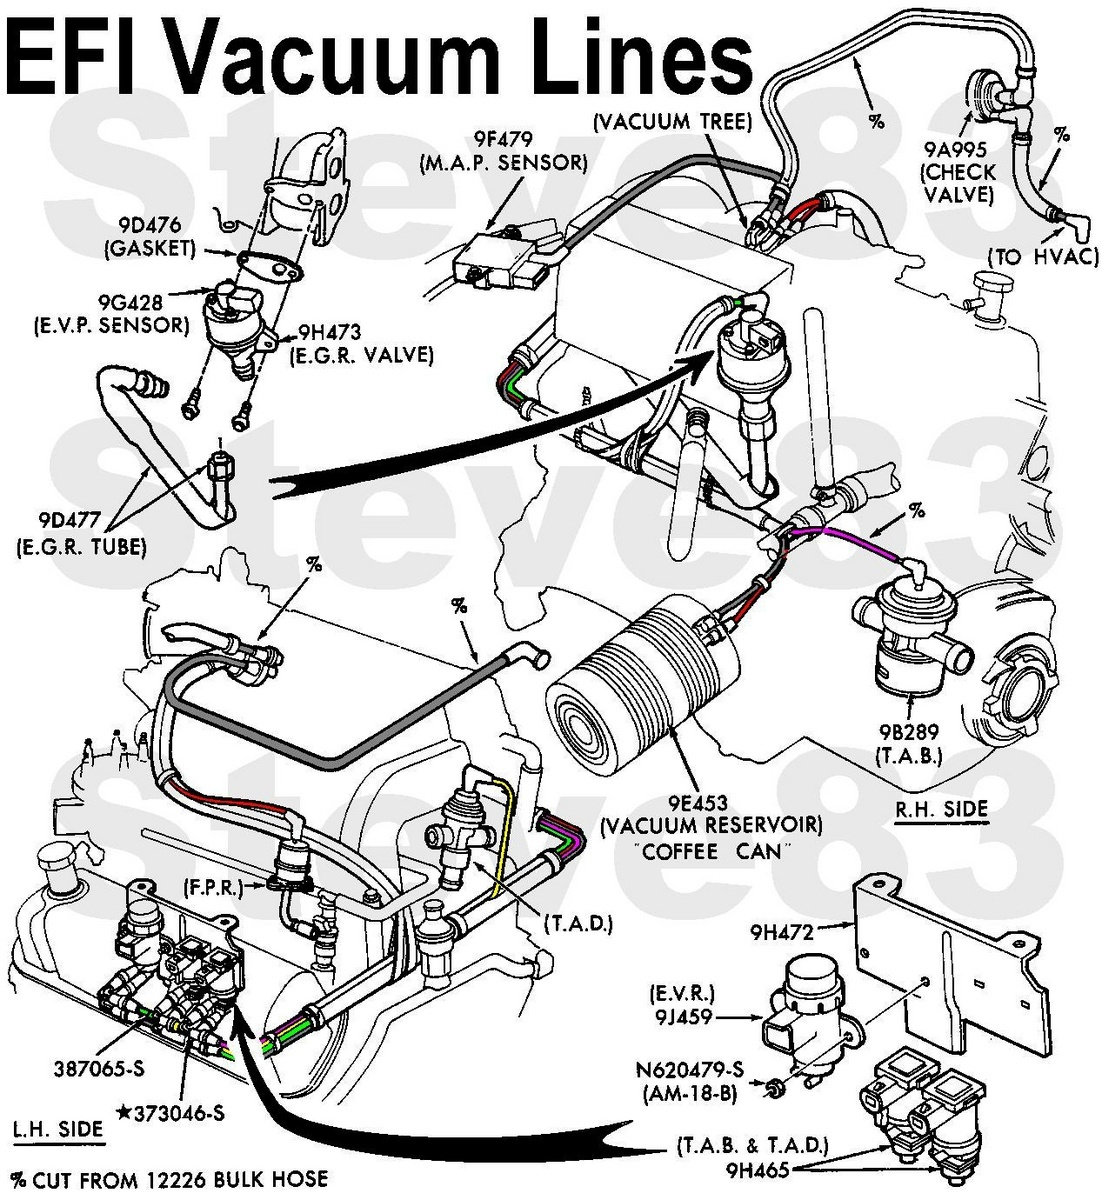 2013 f 150 wiring harness with Discussion T20569 Ds546606 on 3kw1y Cause Power Back Sliding Glass Not Work moreover Wiring Diagram For 1999 Ford F350 7 3l further 7r8d7 F250 Sd Ford F250 Super Duty 2011 Trailer Lights likewise 4f1kd Chevrolet K1500 4x4 93 Chevy Z71 Speed Tbi V8 likewise C6 Headlight Wiring Harness.